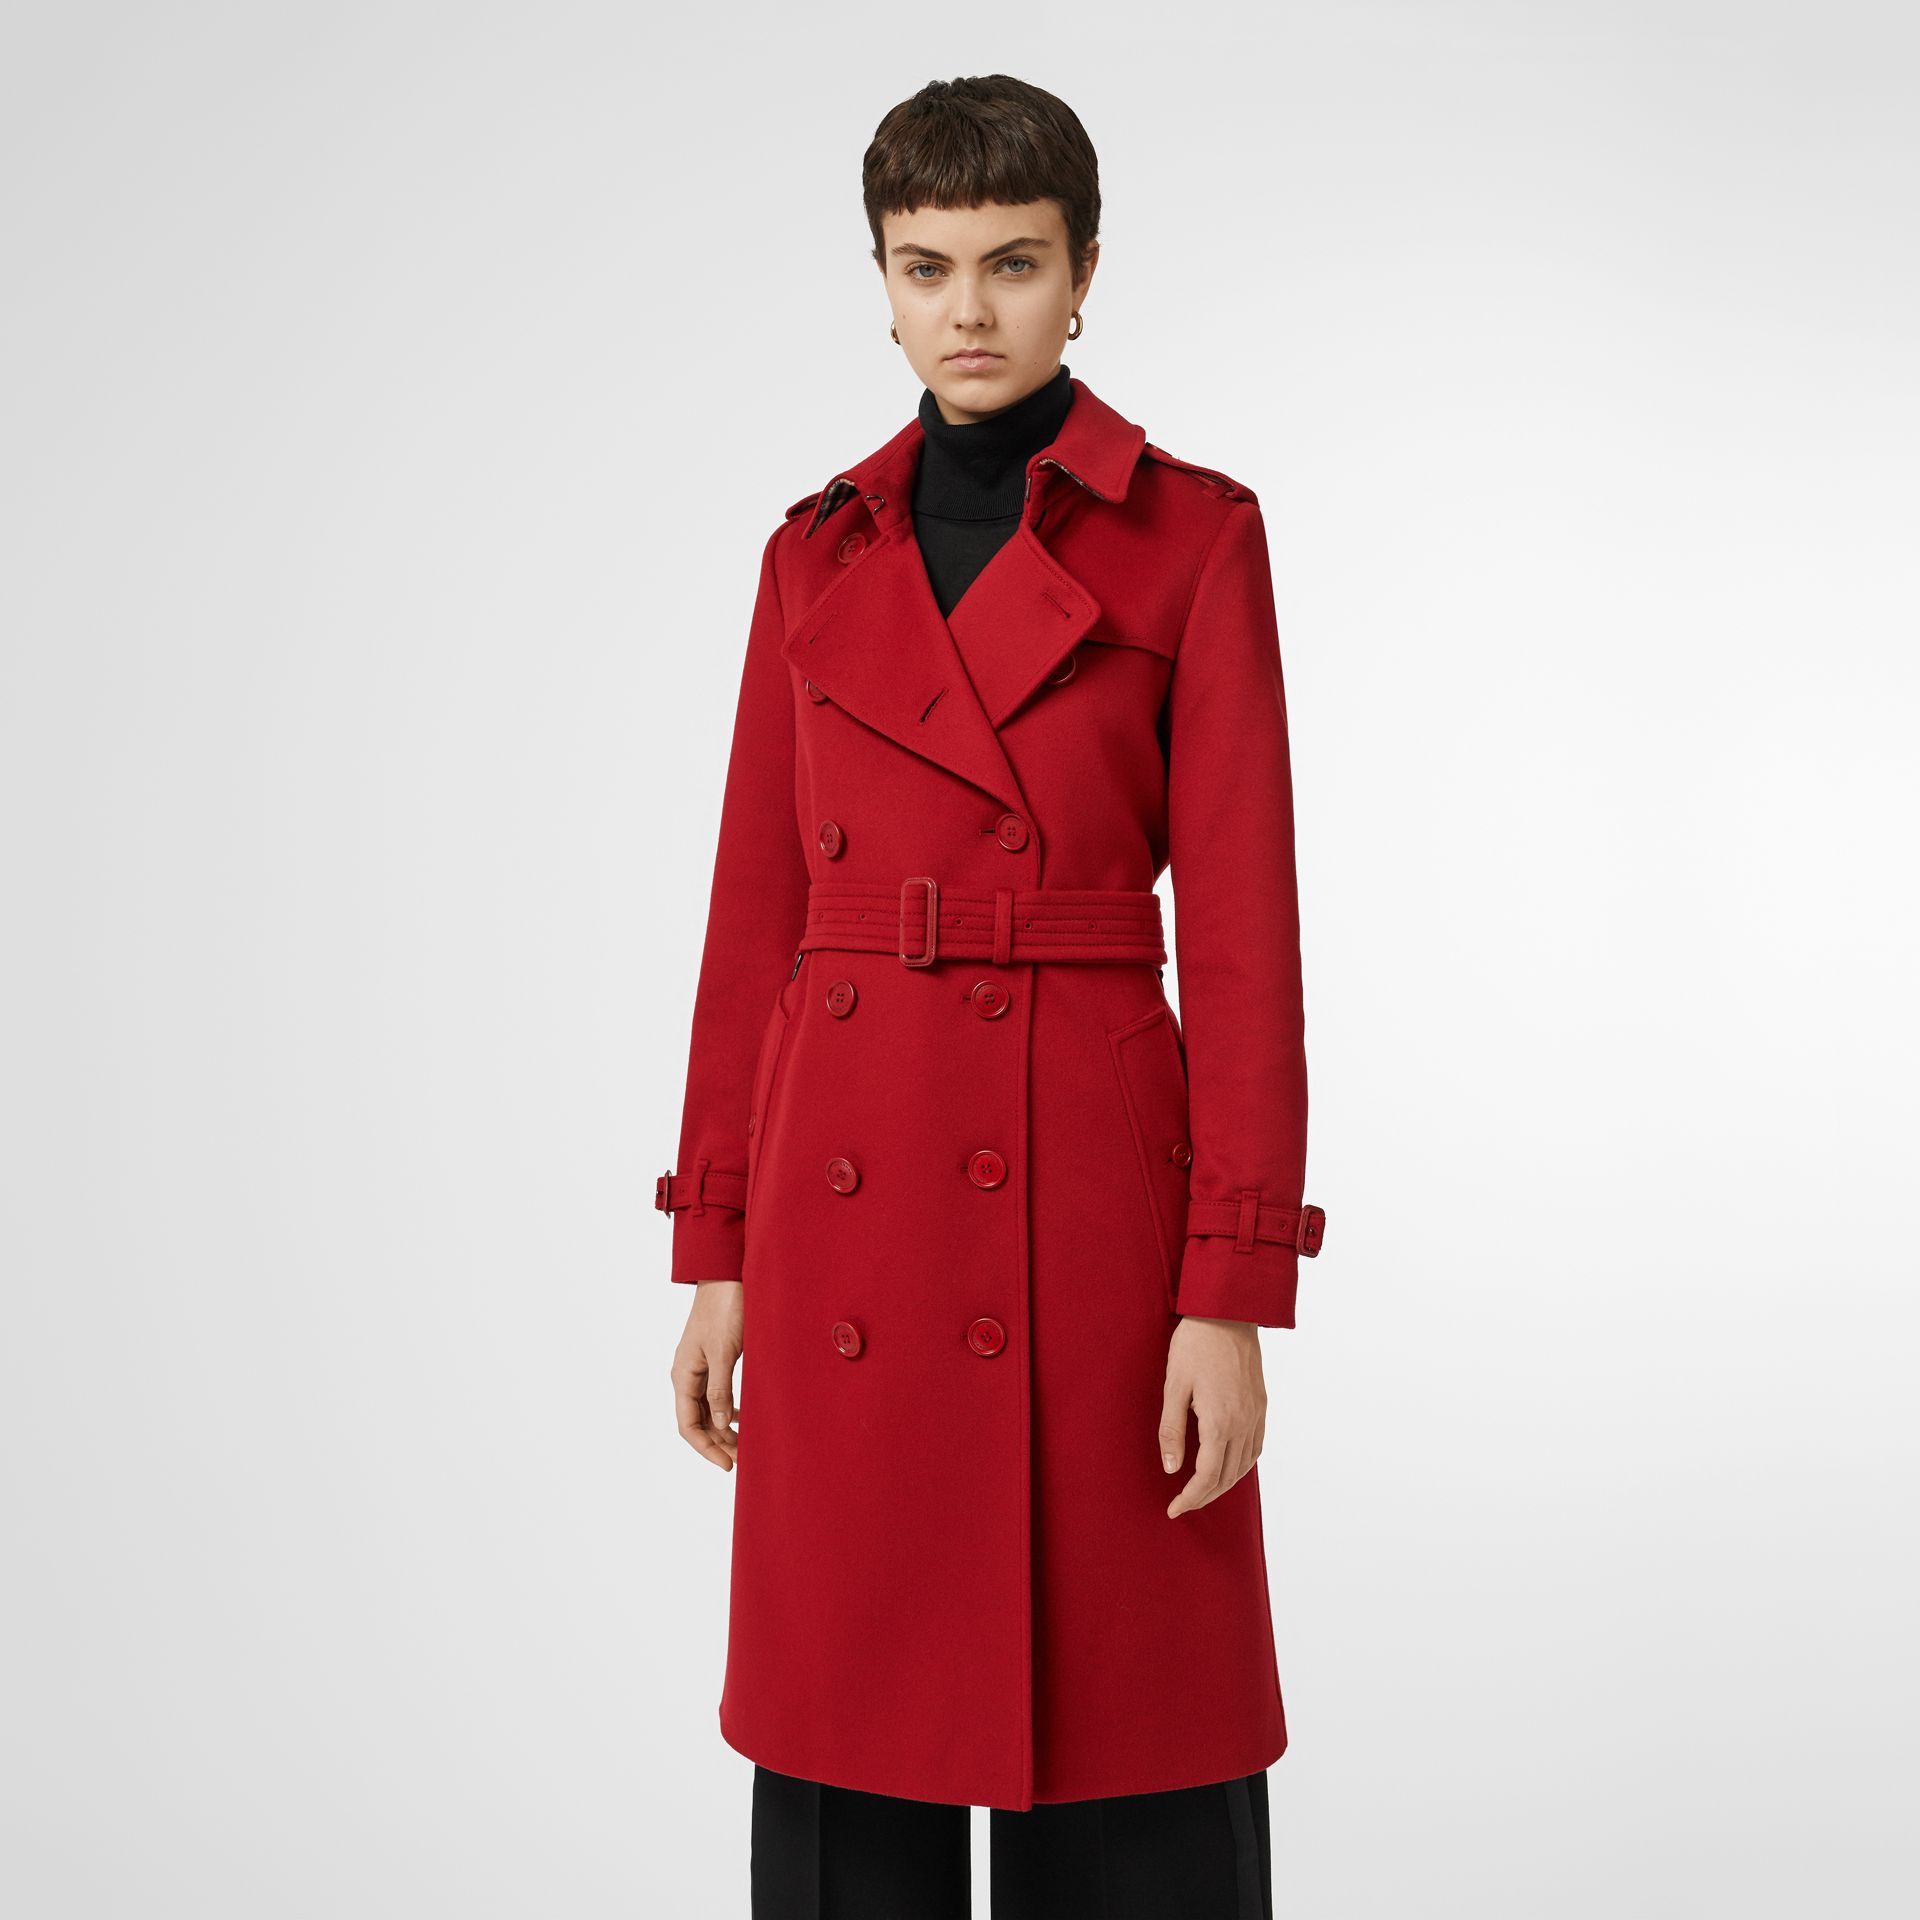 Cashmere Trench Coat in Red - Women | Burberry - gallery image 6